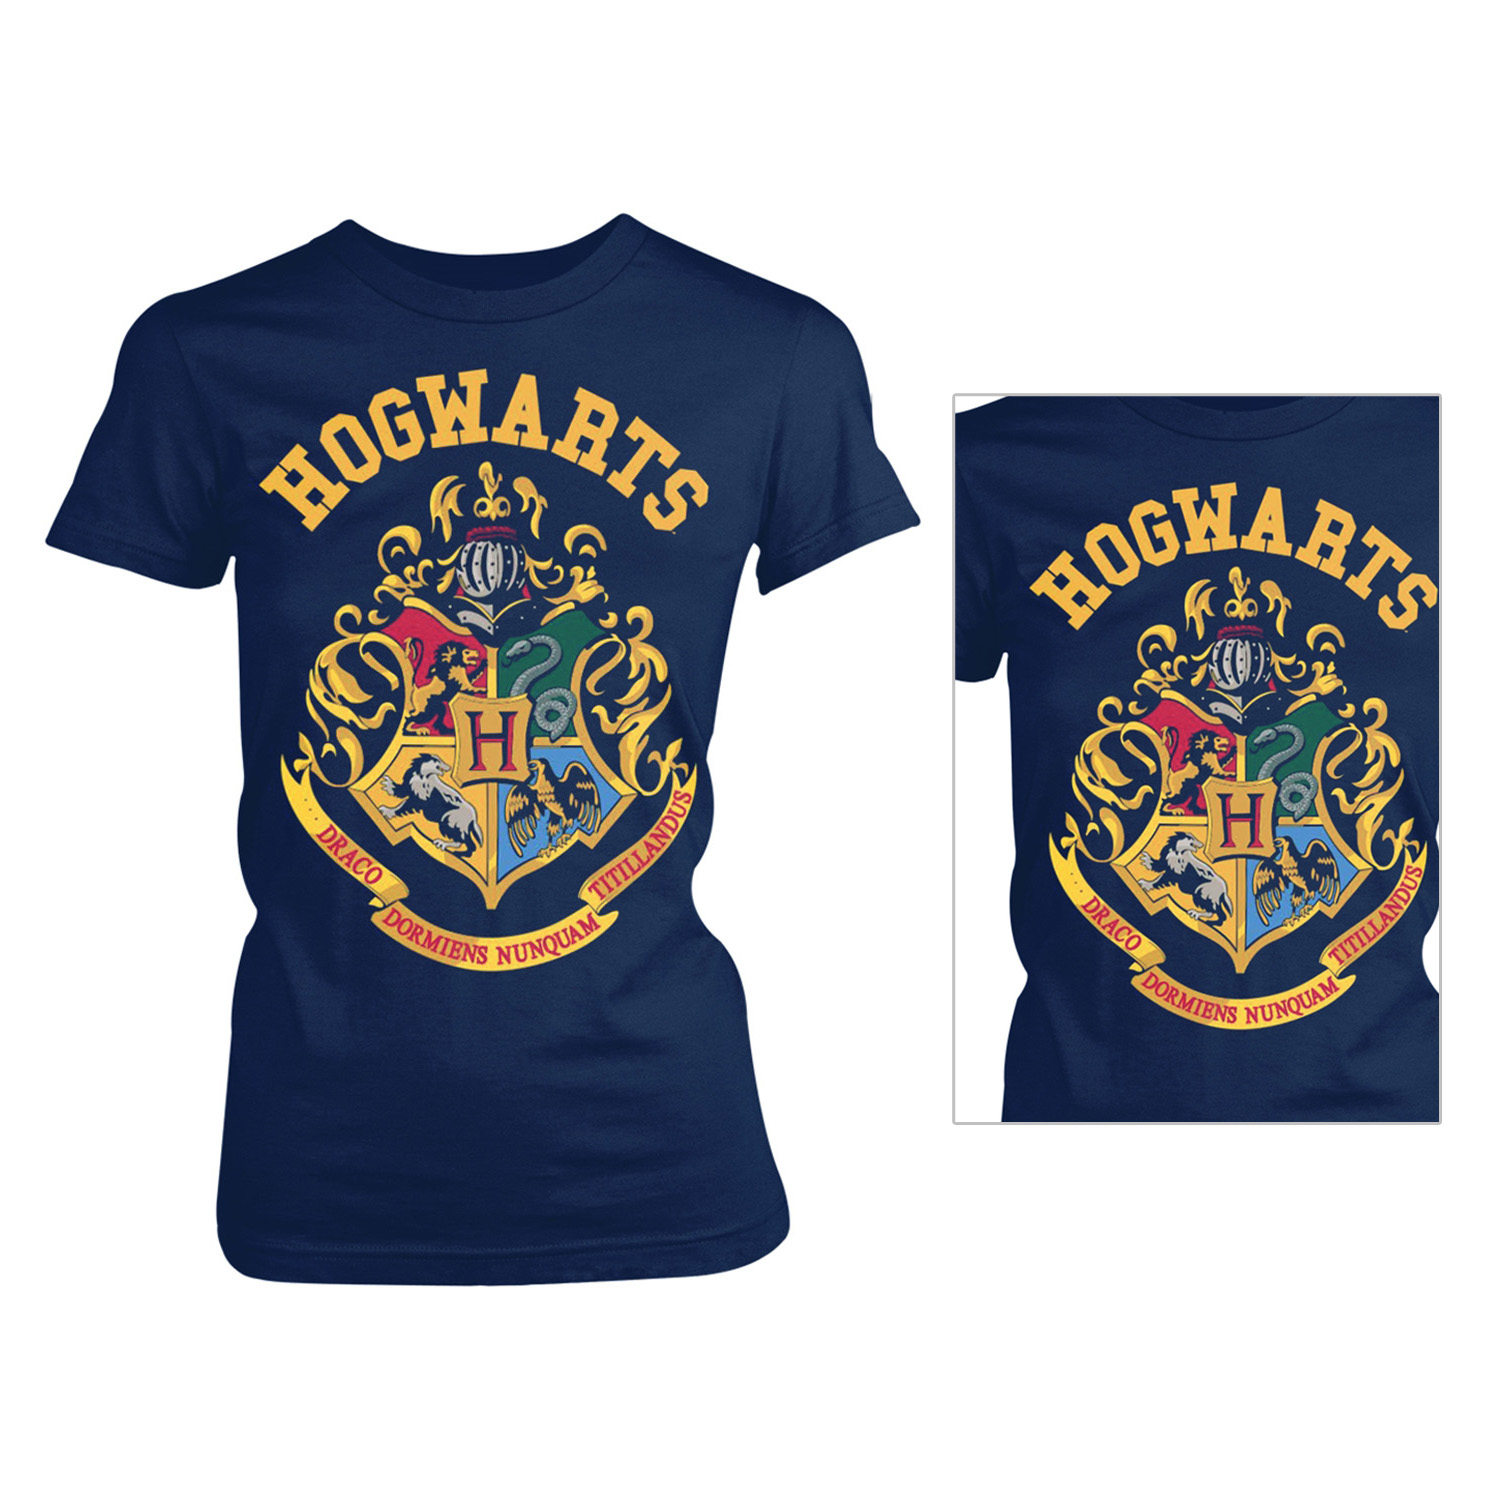 3293b628f Details about Harry Potter Official Licensed Mens Hogwarts Crest Graphic  Print T-Shirt Tee Top